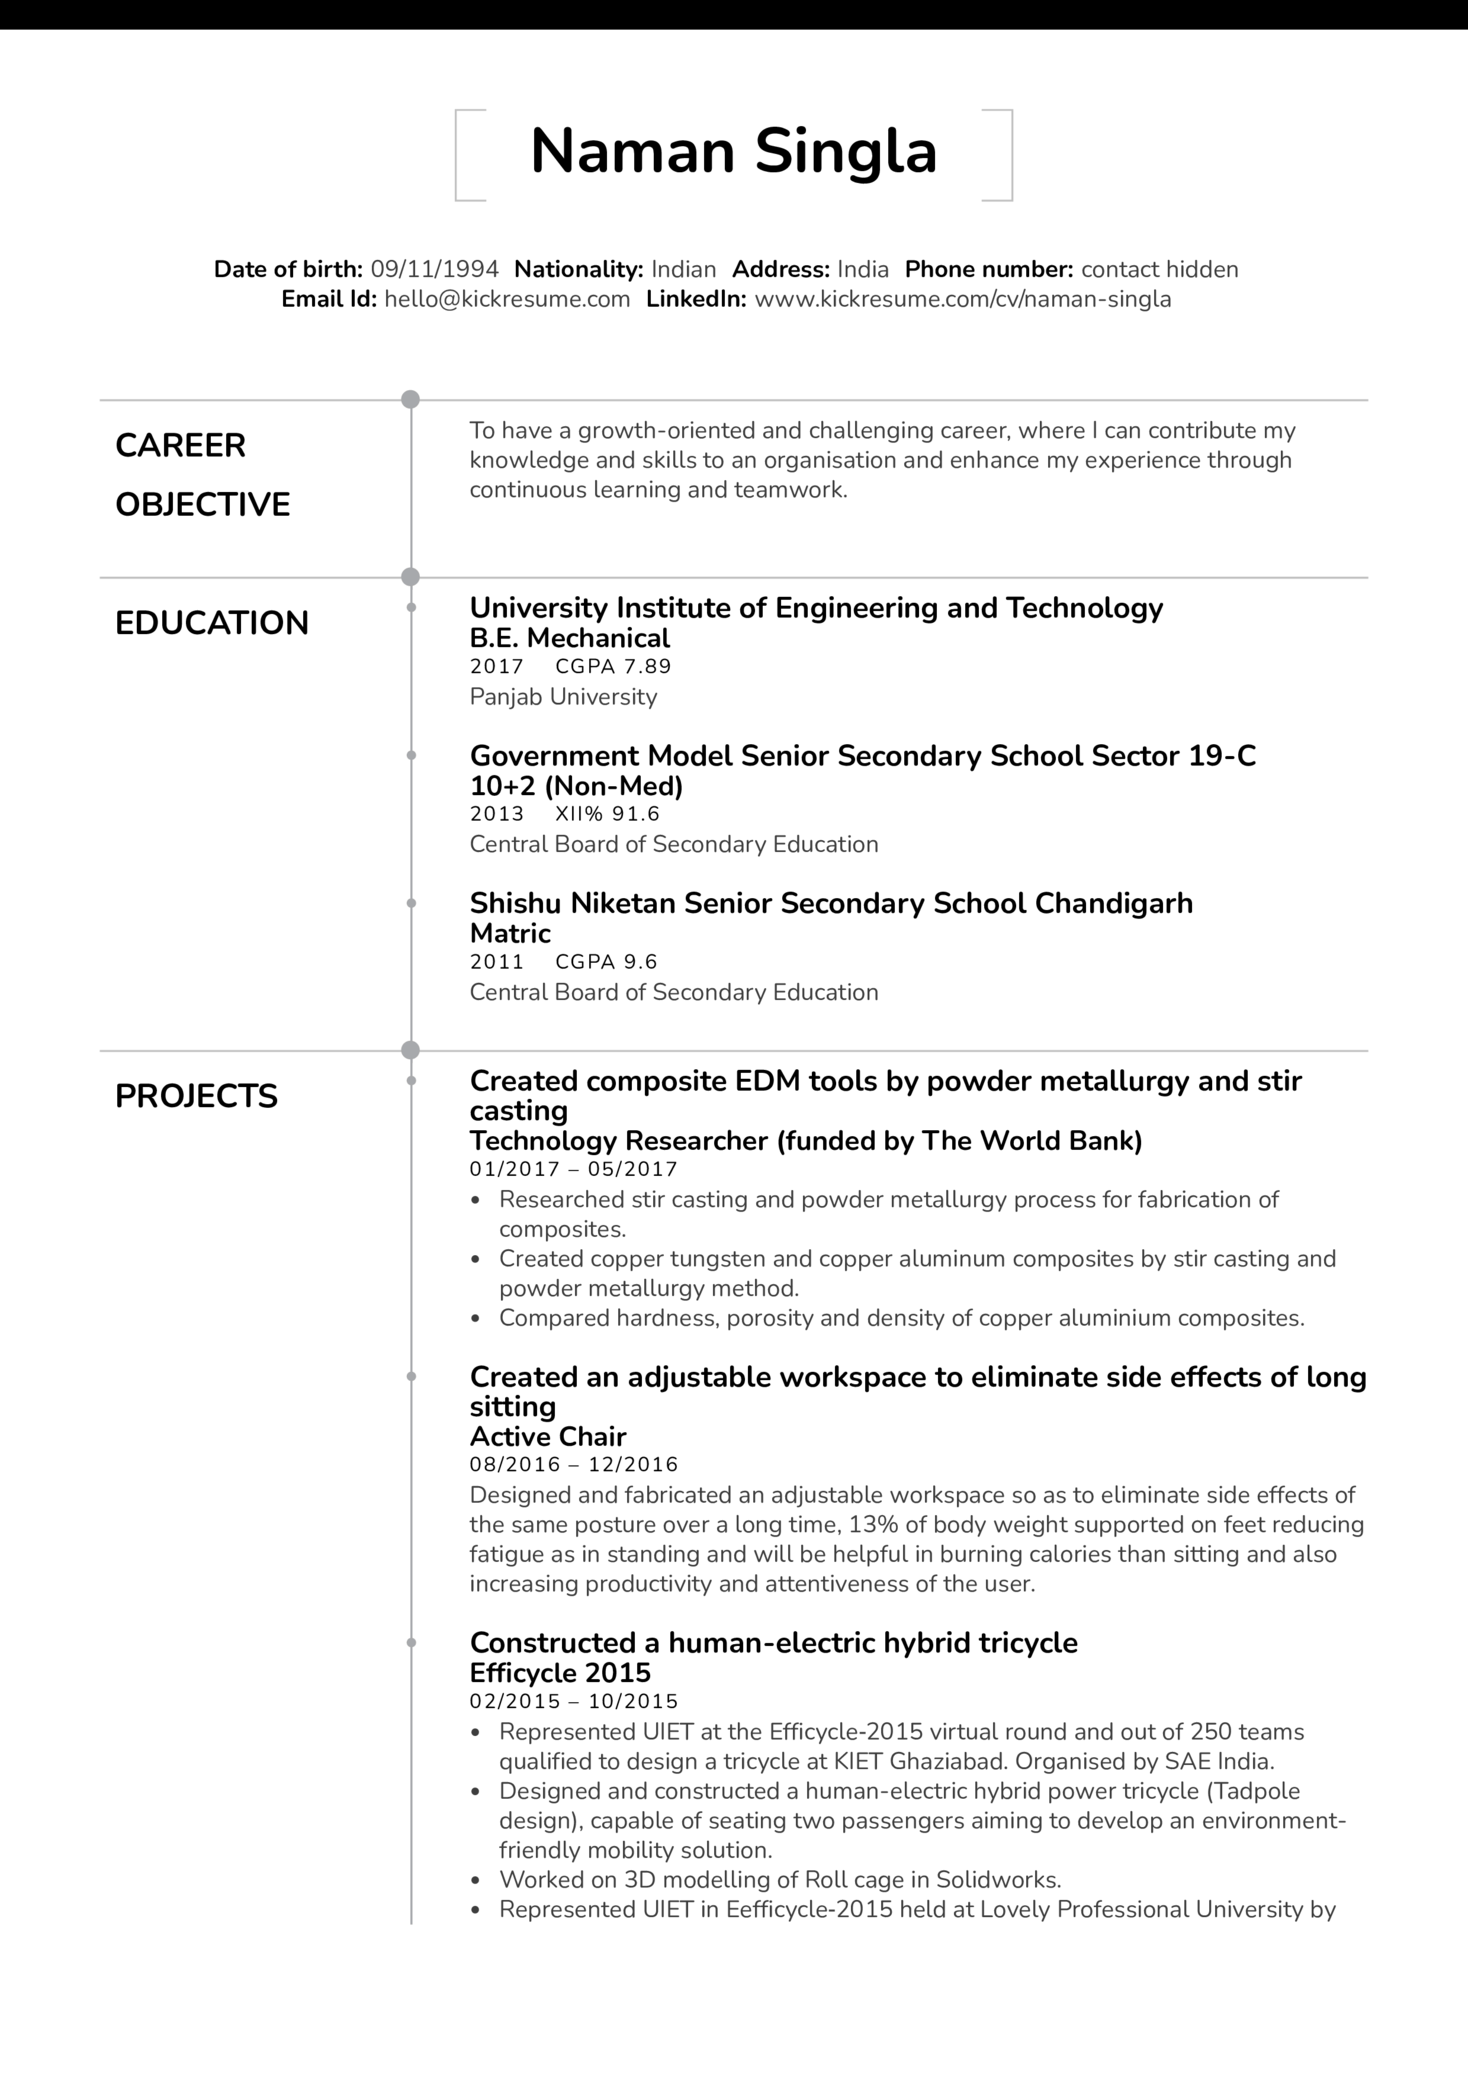 Technology Researcher at the the World Bank Resume Sample (parte 1)